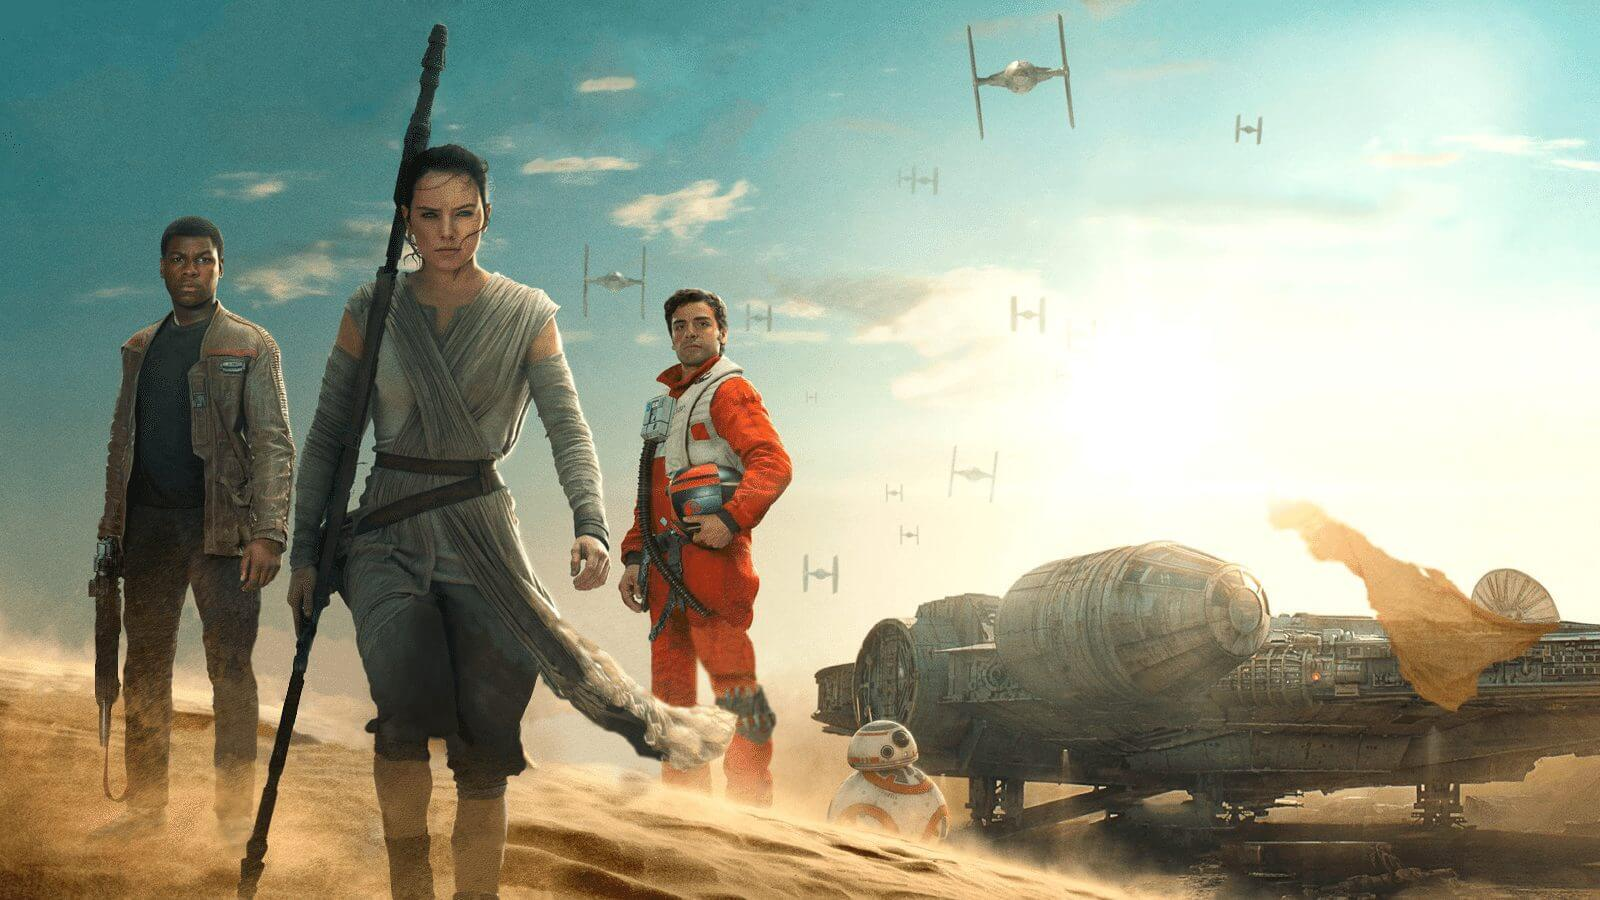 star wars episode vii the force awakens hd wallpaper finn rey and poe